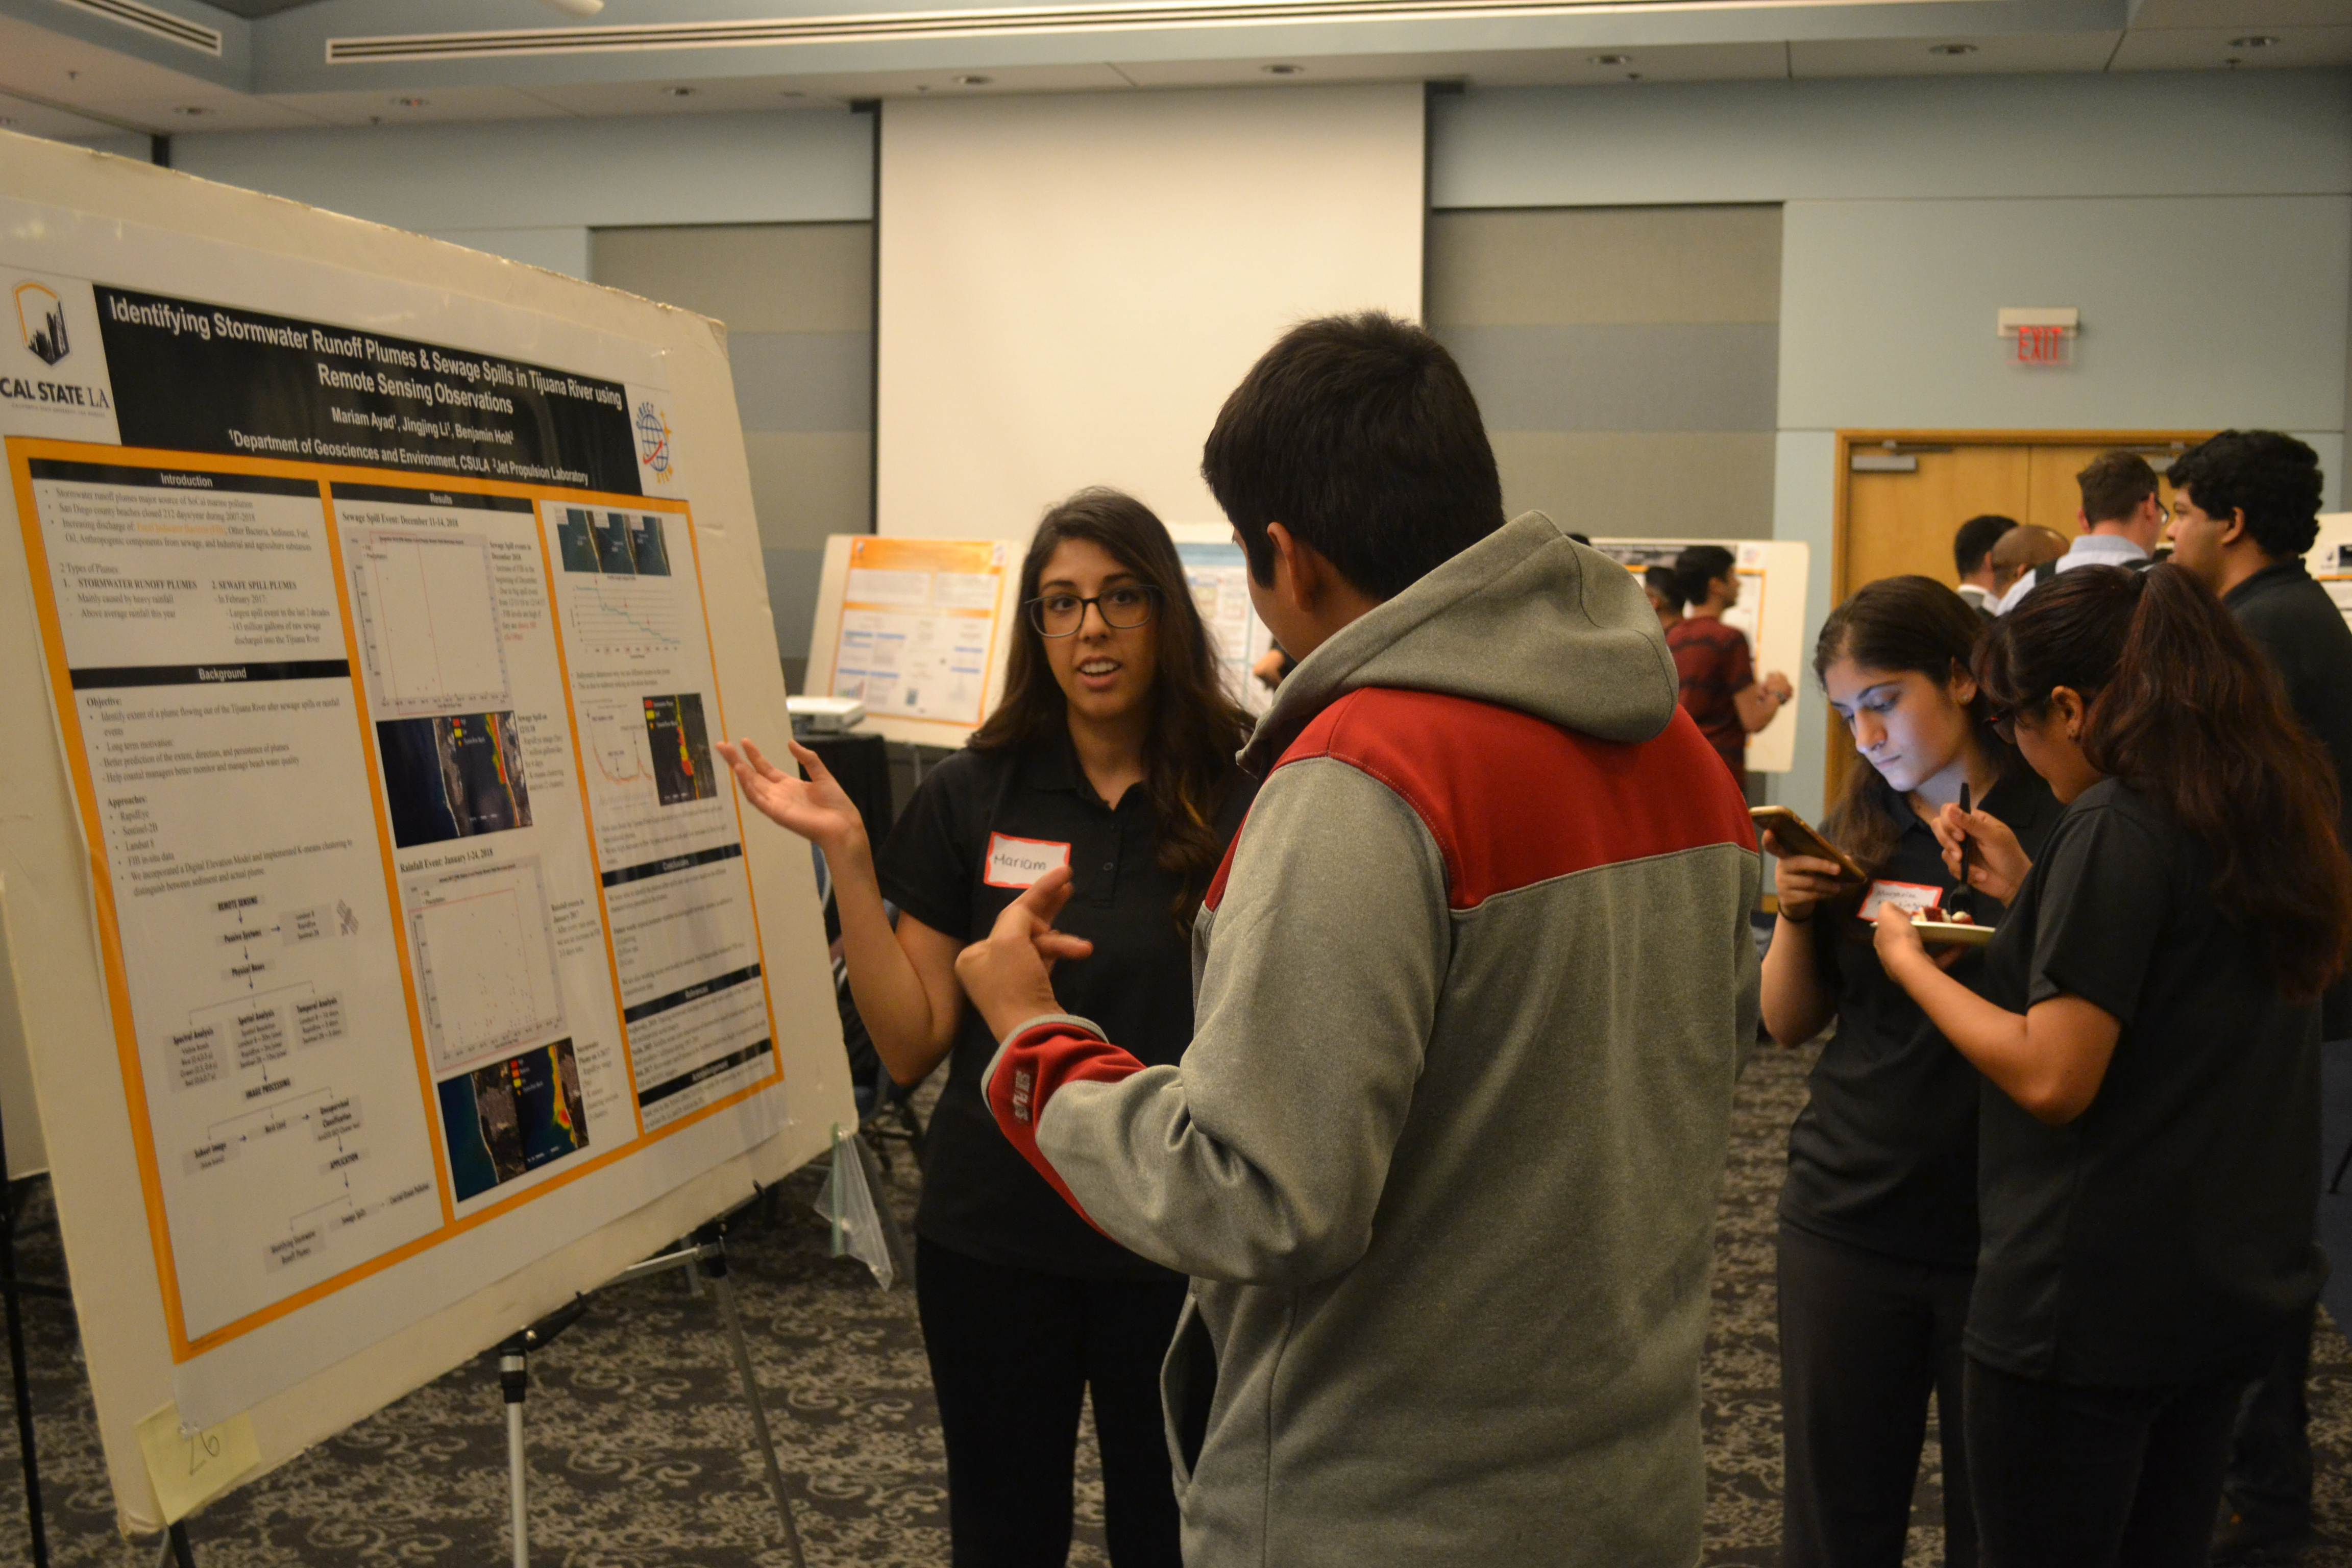 Mariam Ayad explaining her research poster at the 4th Annual NASA DIRECT-STEM Research Symposium